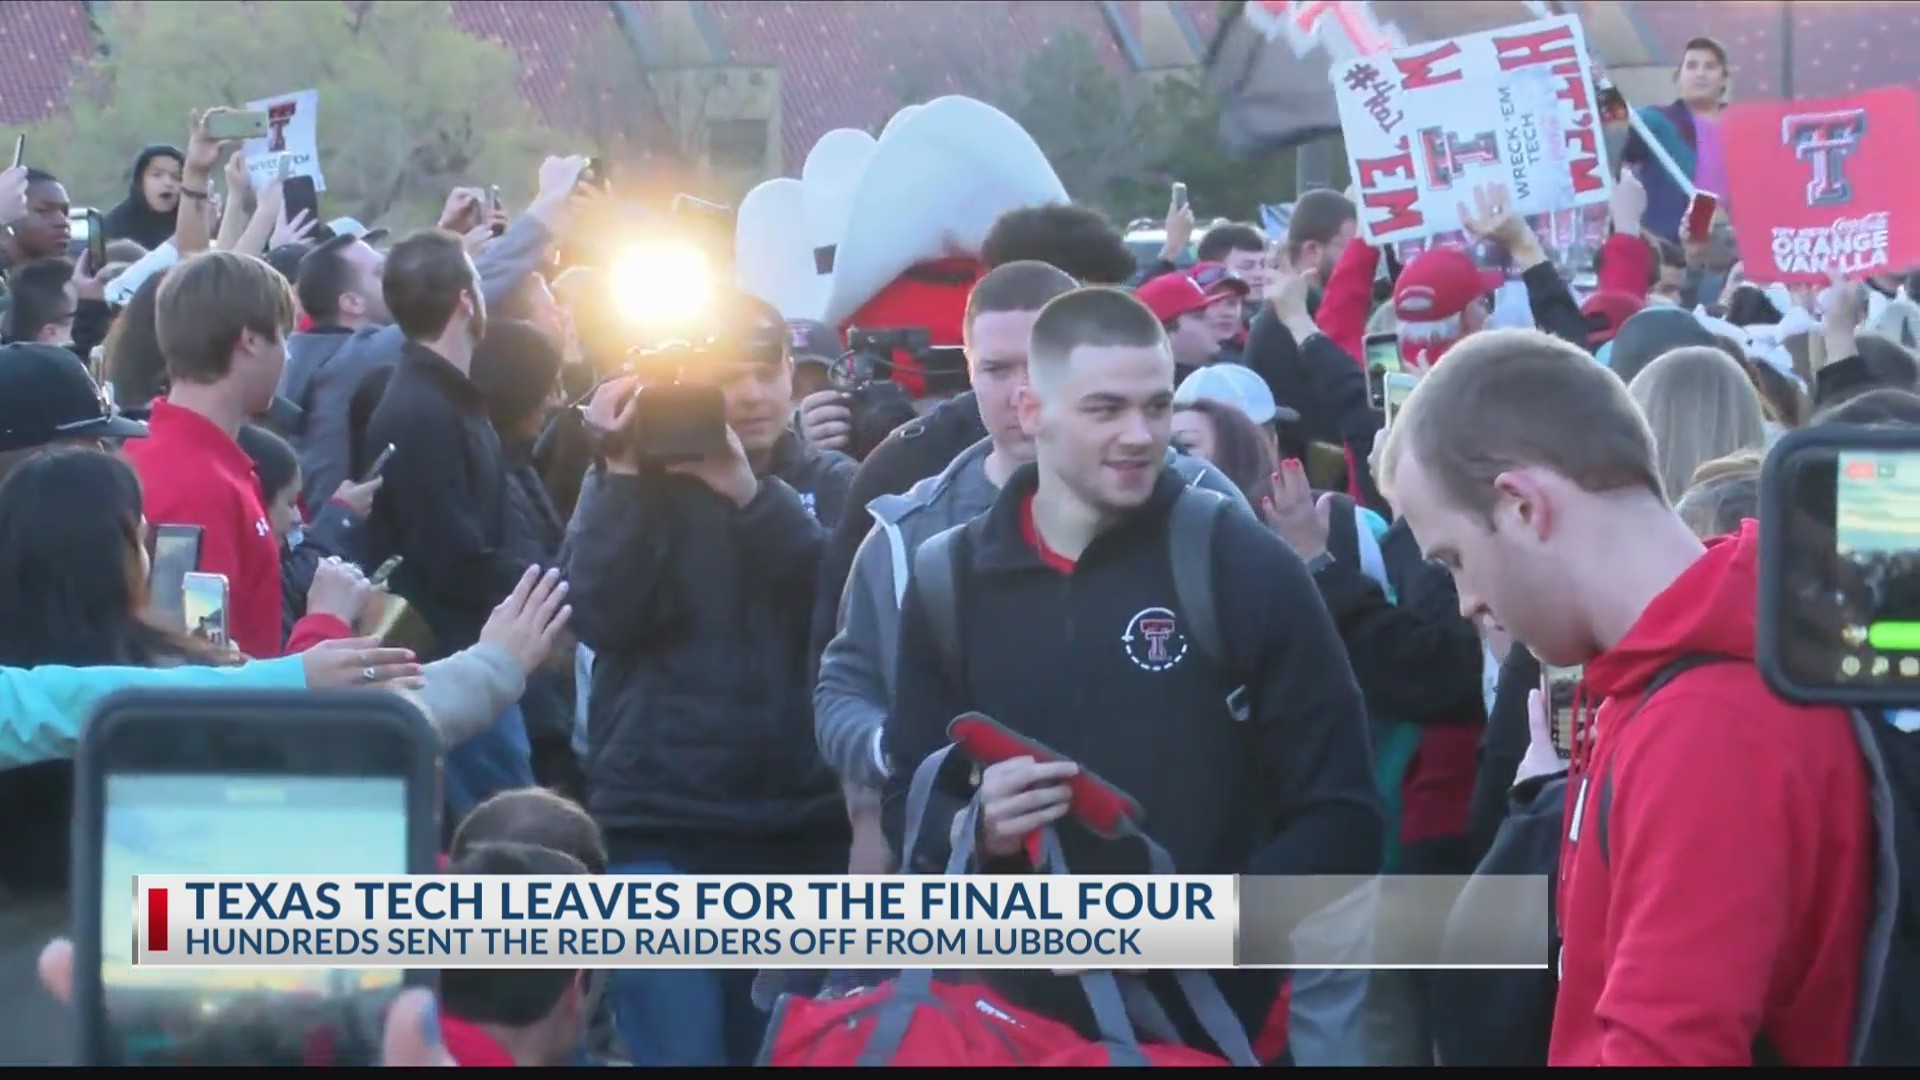 Texas_Tech_gets_rousing_sendoff_as_they__0_20190404041837